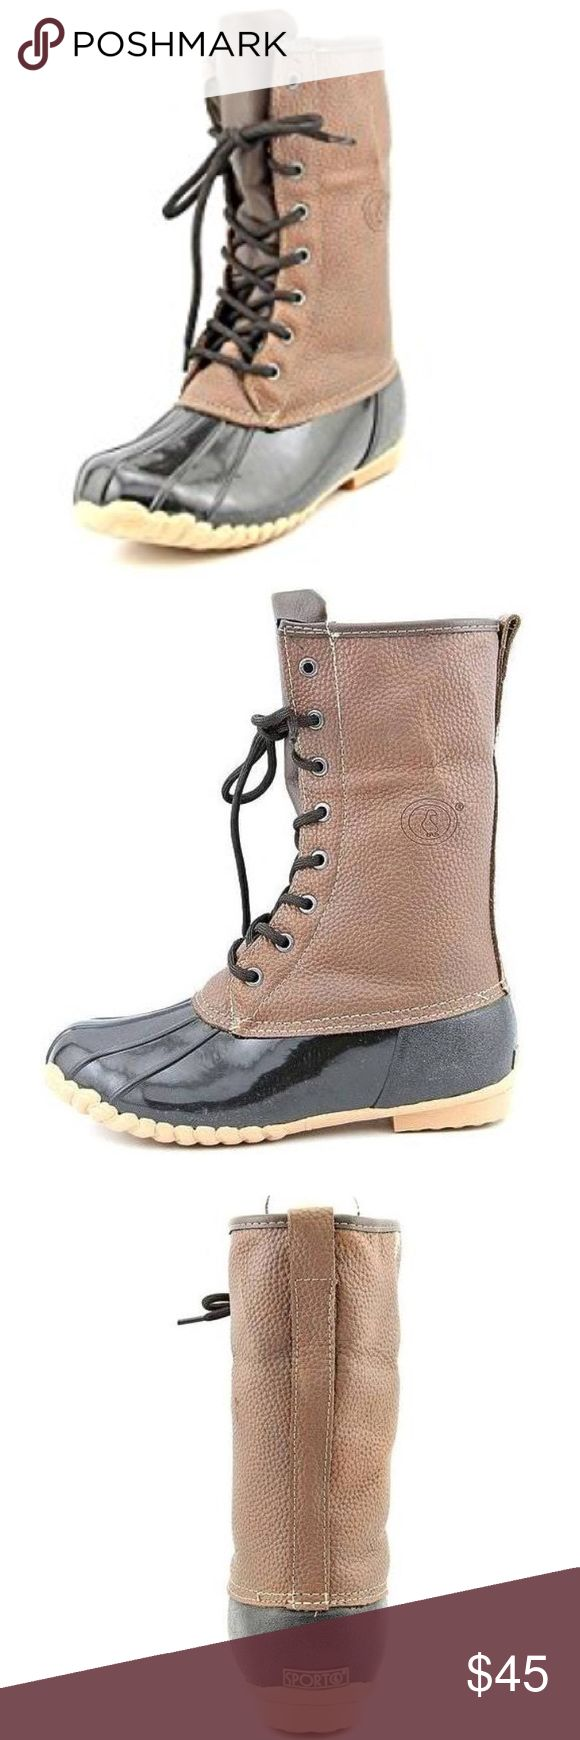 NWOT Sporto Daphne Women's Duck Boot Sporto applies the latest weather-proof technology in its boots to provide maximum comfort while incorporating modern style. From sophisticated styles to cozy winter boots, Sporto offers a wide variety of designs for both work and play. Sporto Shoes Winter & Rain Boots